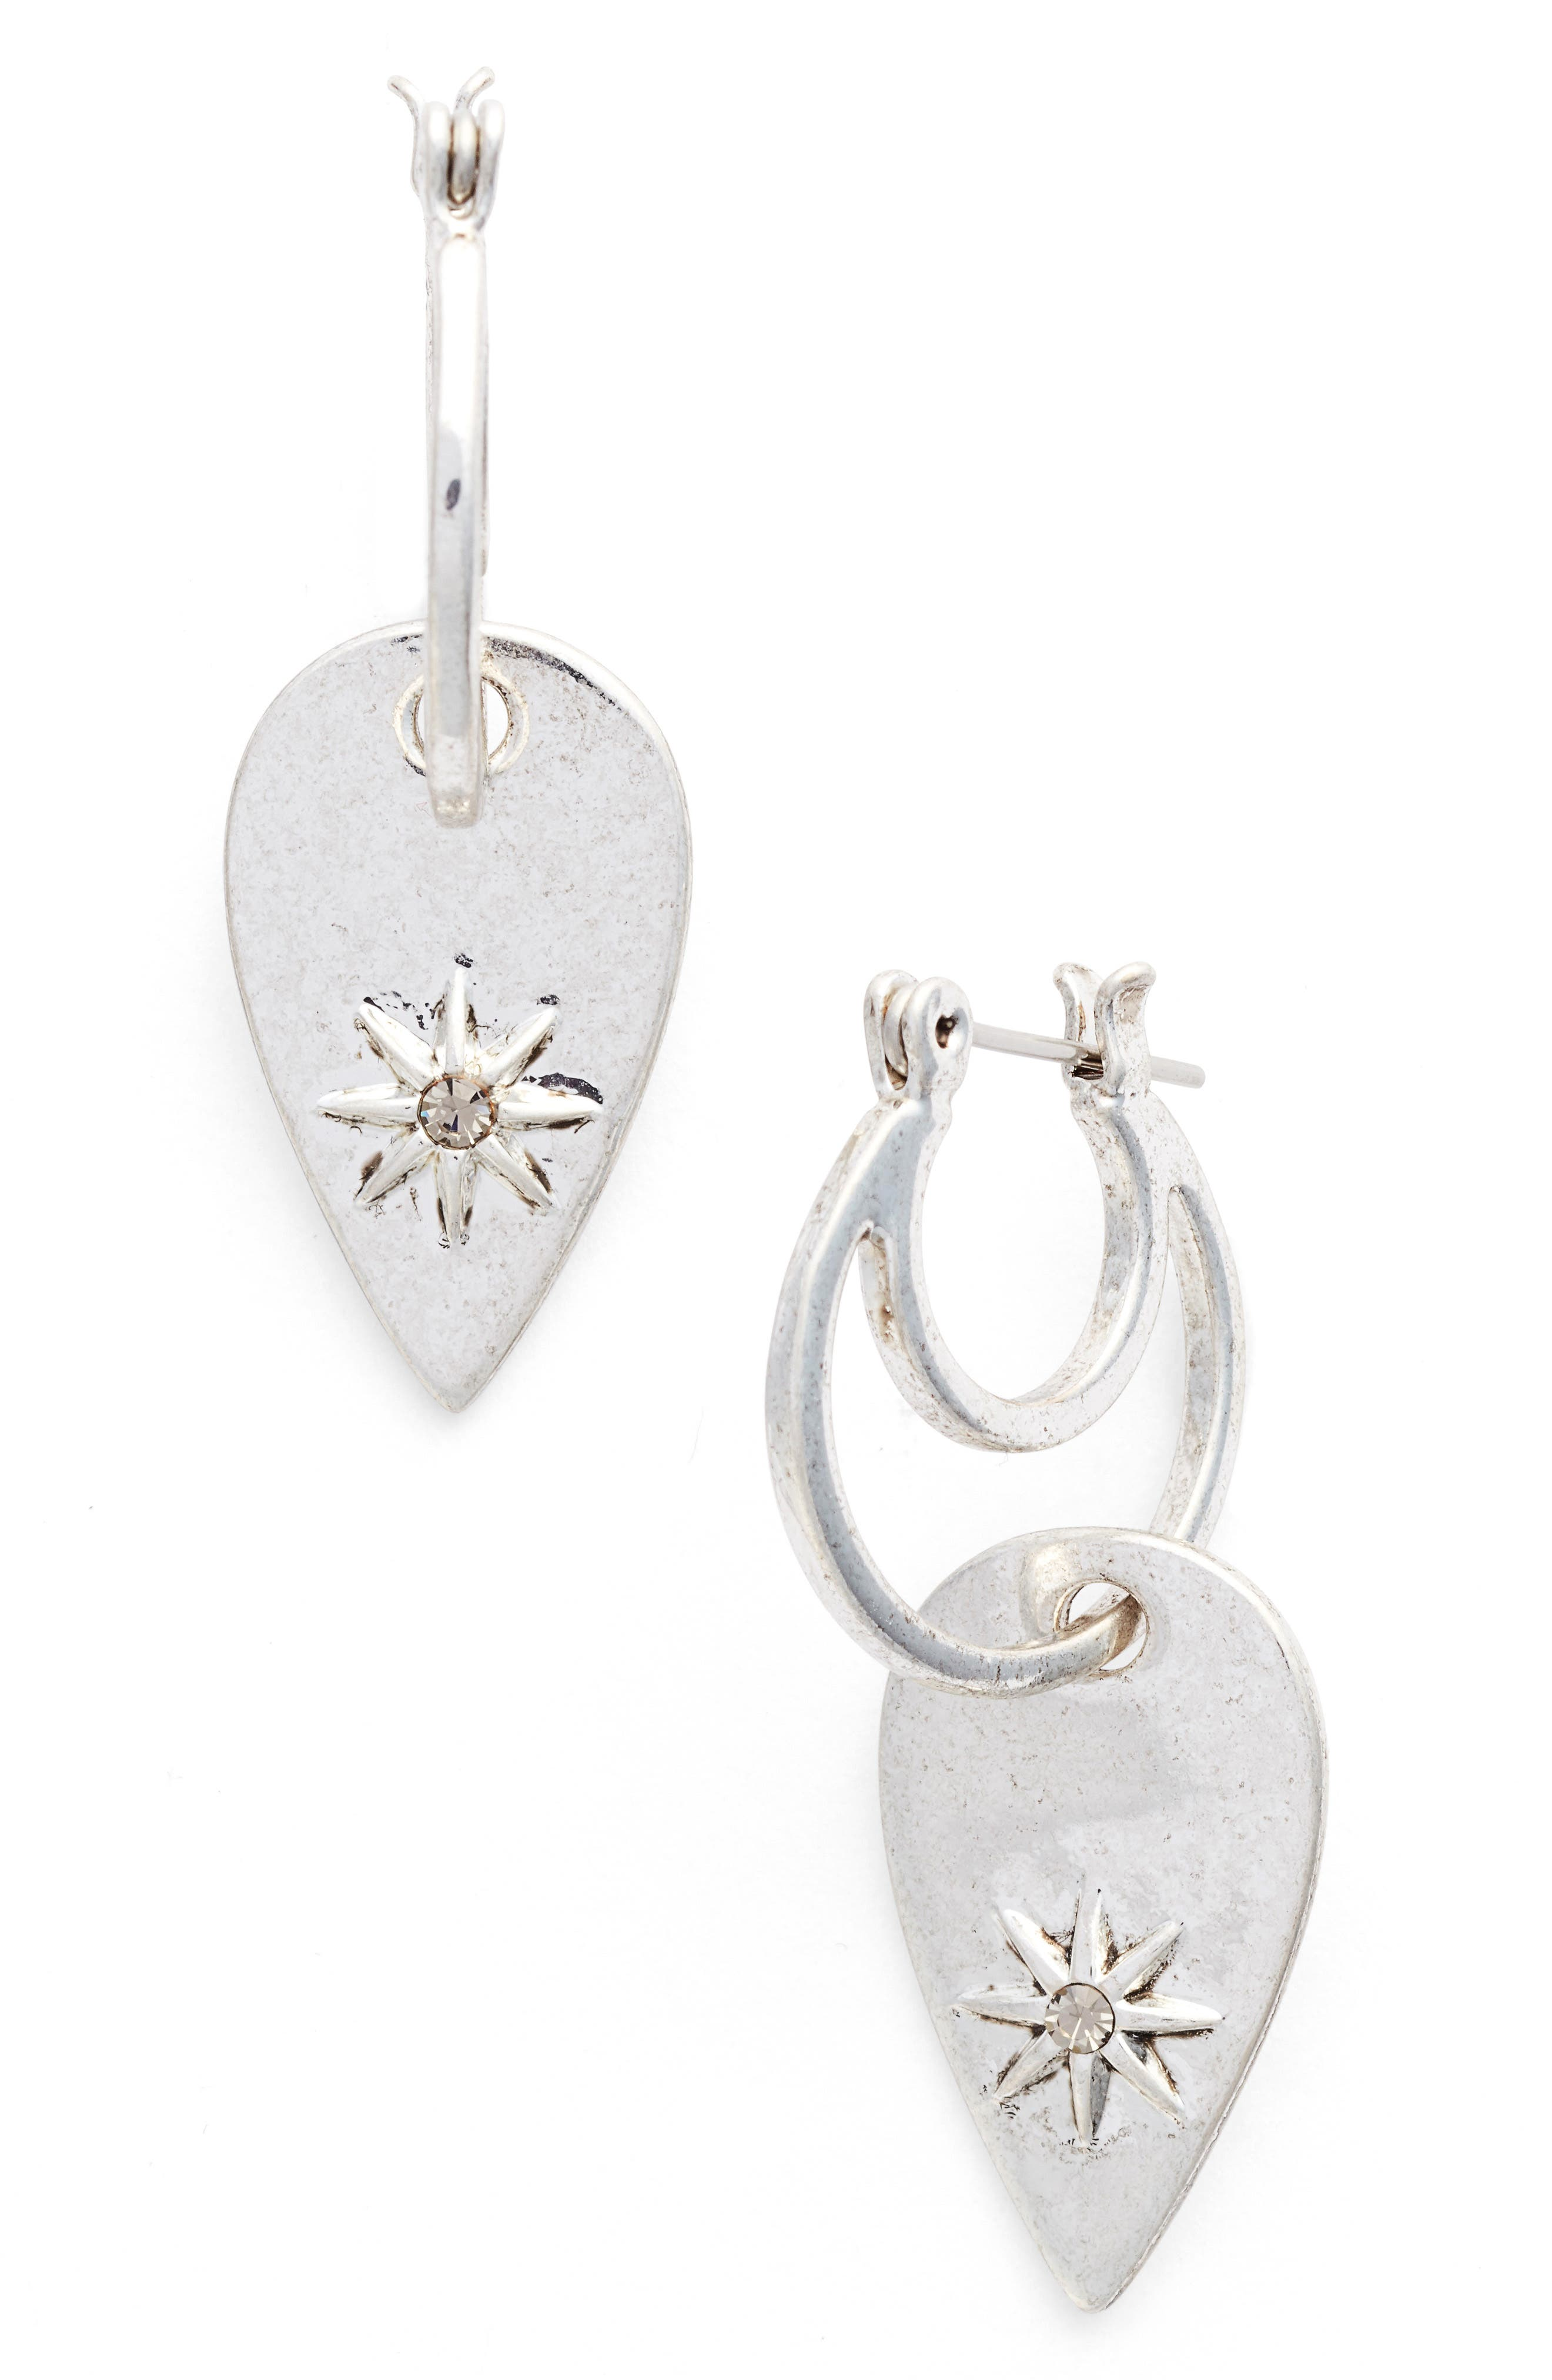 Starburst Double Drop Earrings,                         Main,                         color, Silver